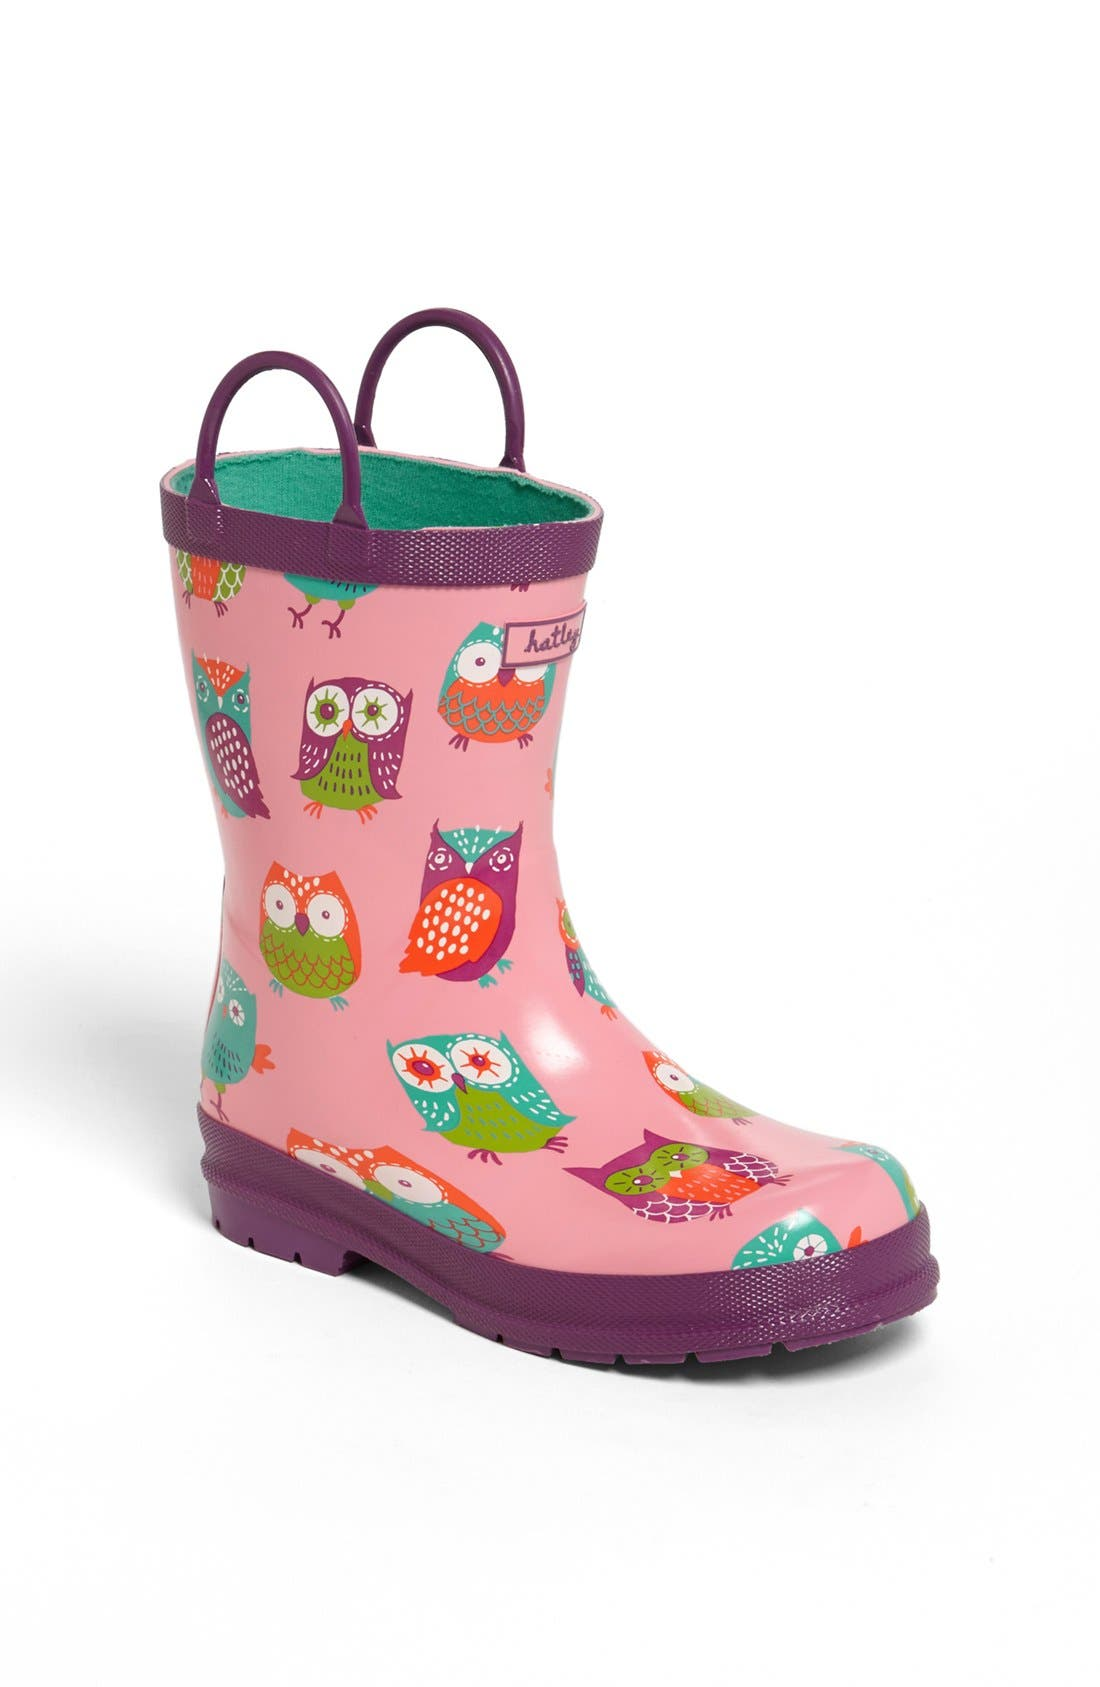 Alternate Image 1 Selected - Hatley 'Party Owls' Rain Boot (Walker, Toddler & Little Kid)